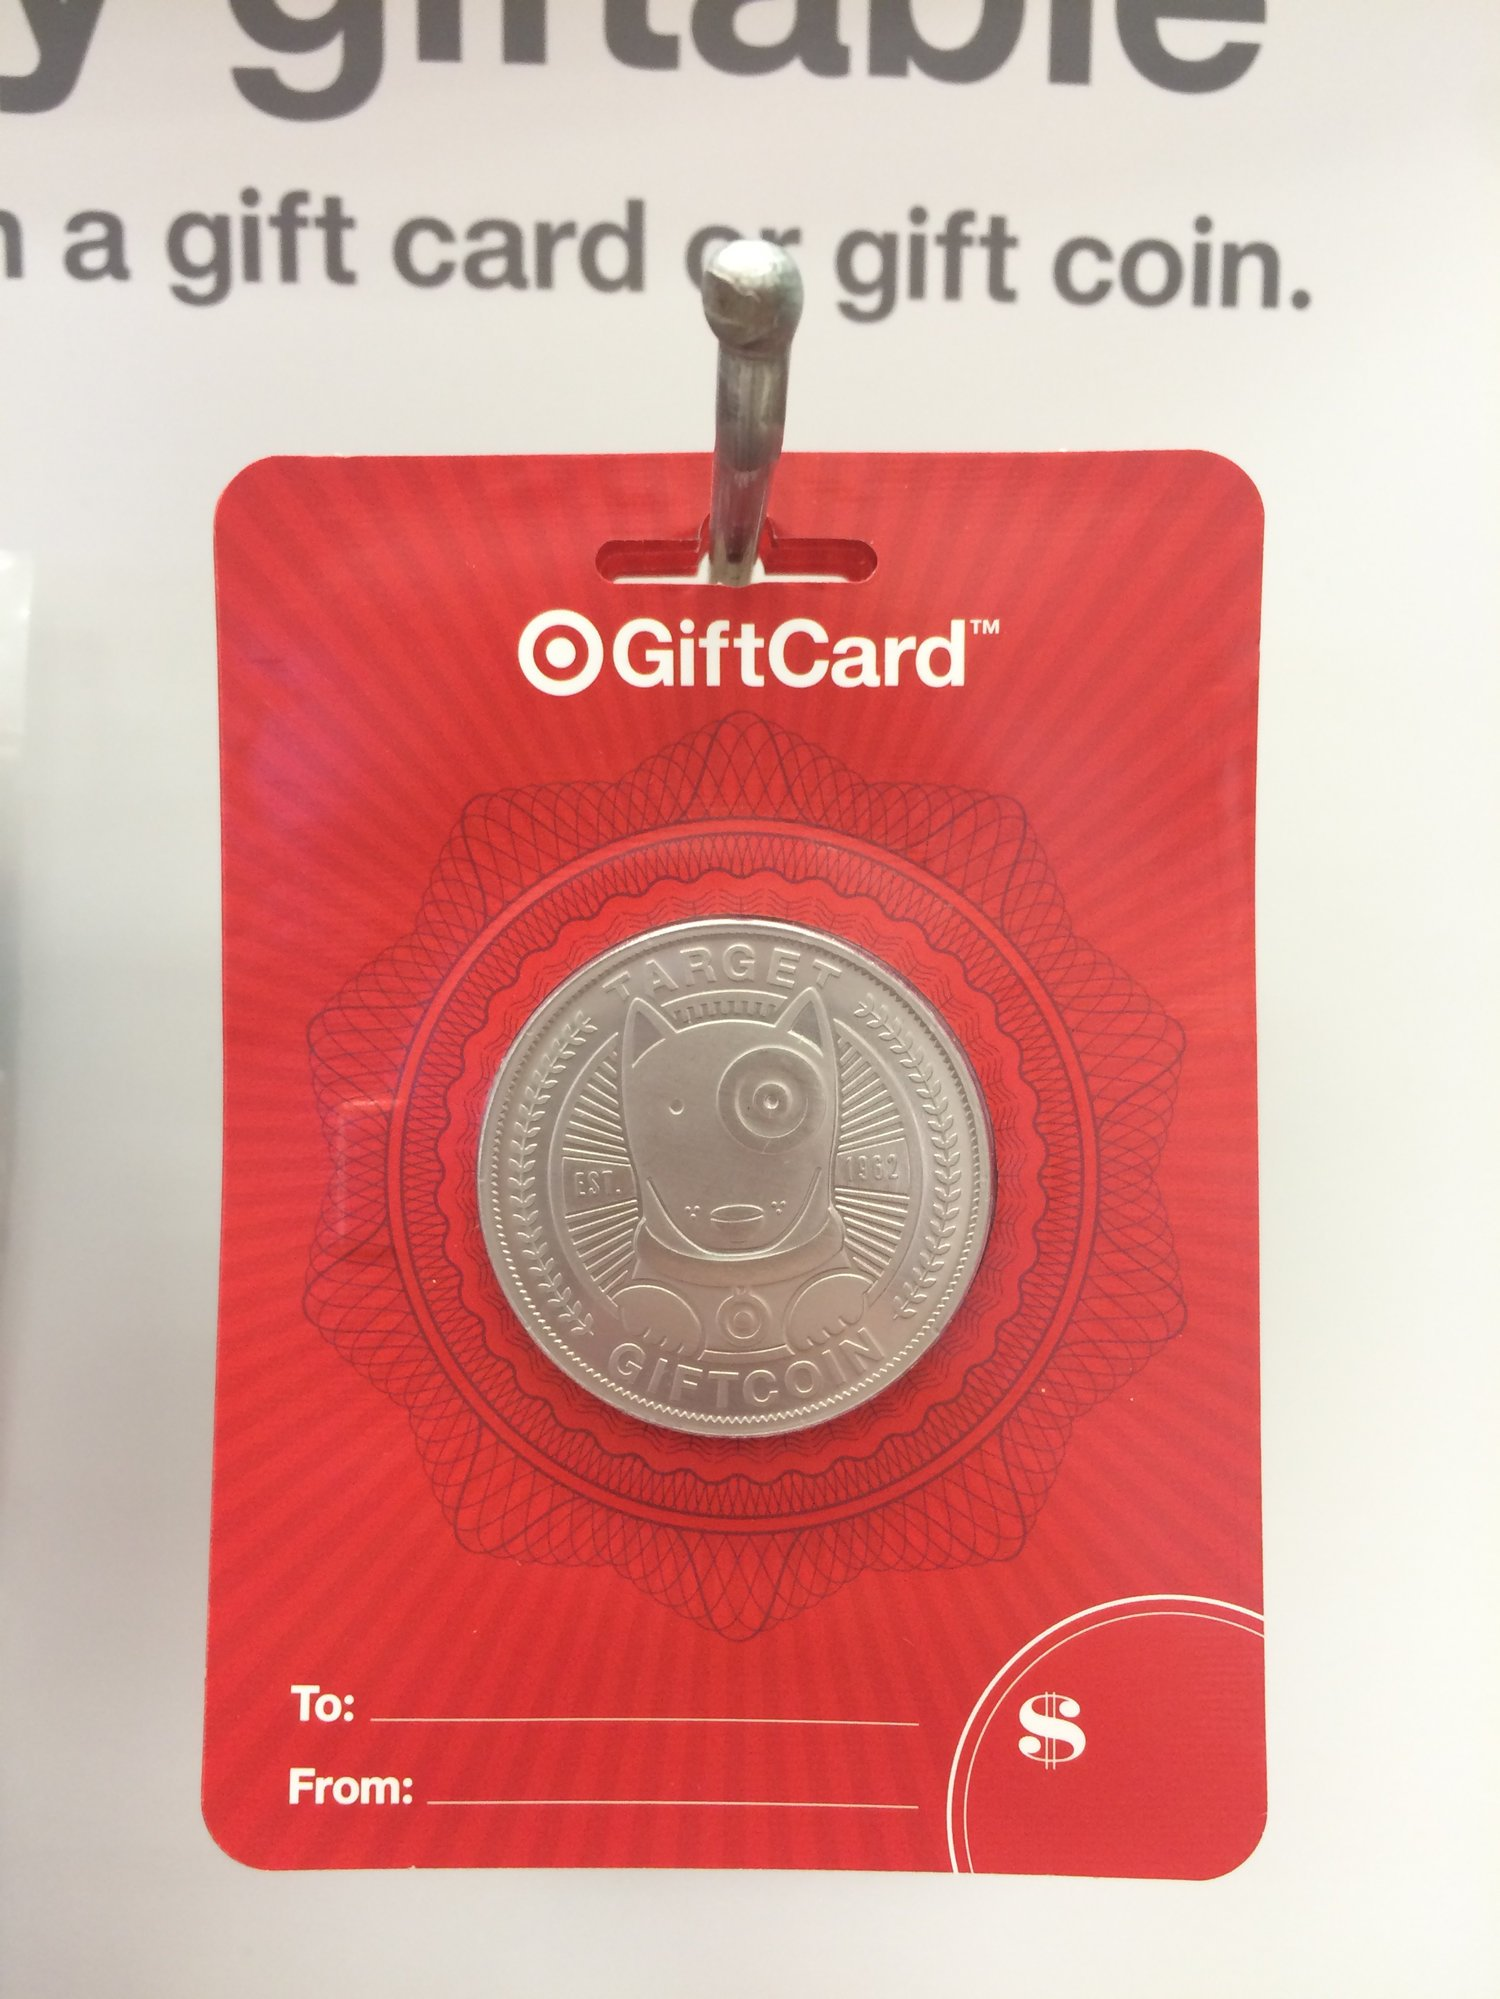 Target coin gift card 8591 - 8 ball pool money hack online no survey